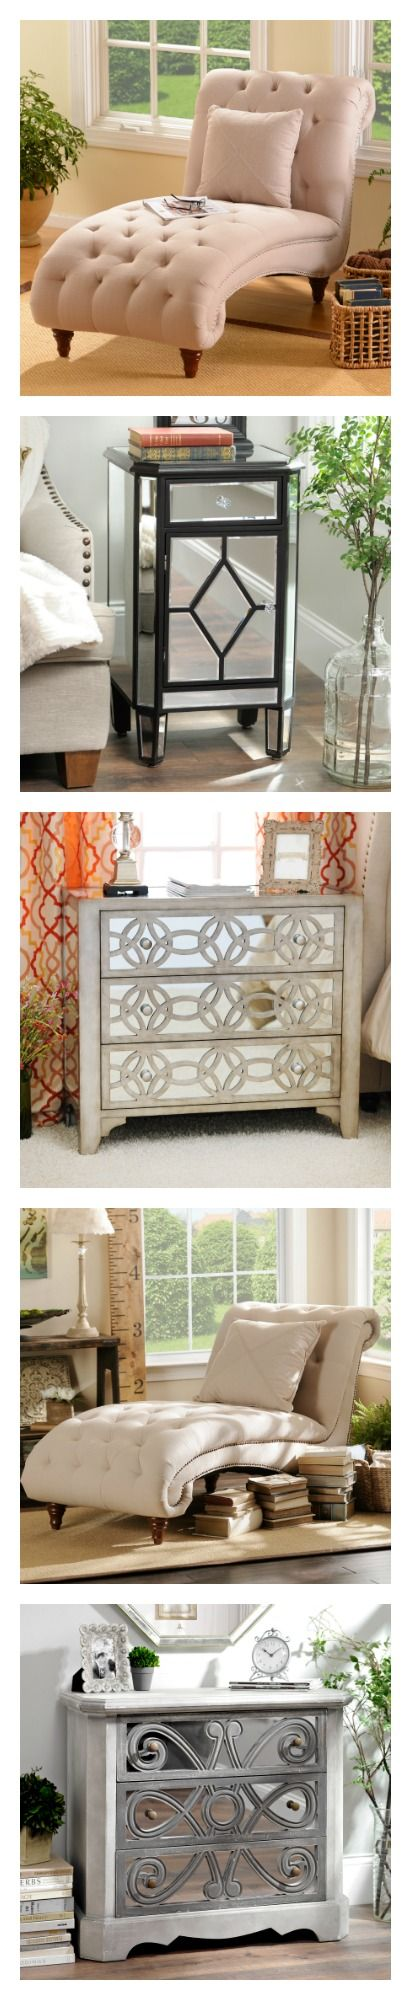 furniture wondrous kirklands chic comfort your kirkland knoxville wichita locations skinny storage cabinet dist ceramic accent table coffee centerpiece ideas tool box hay side